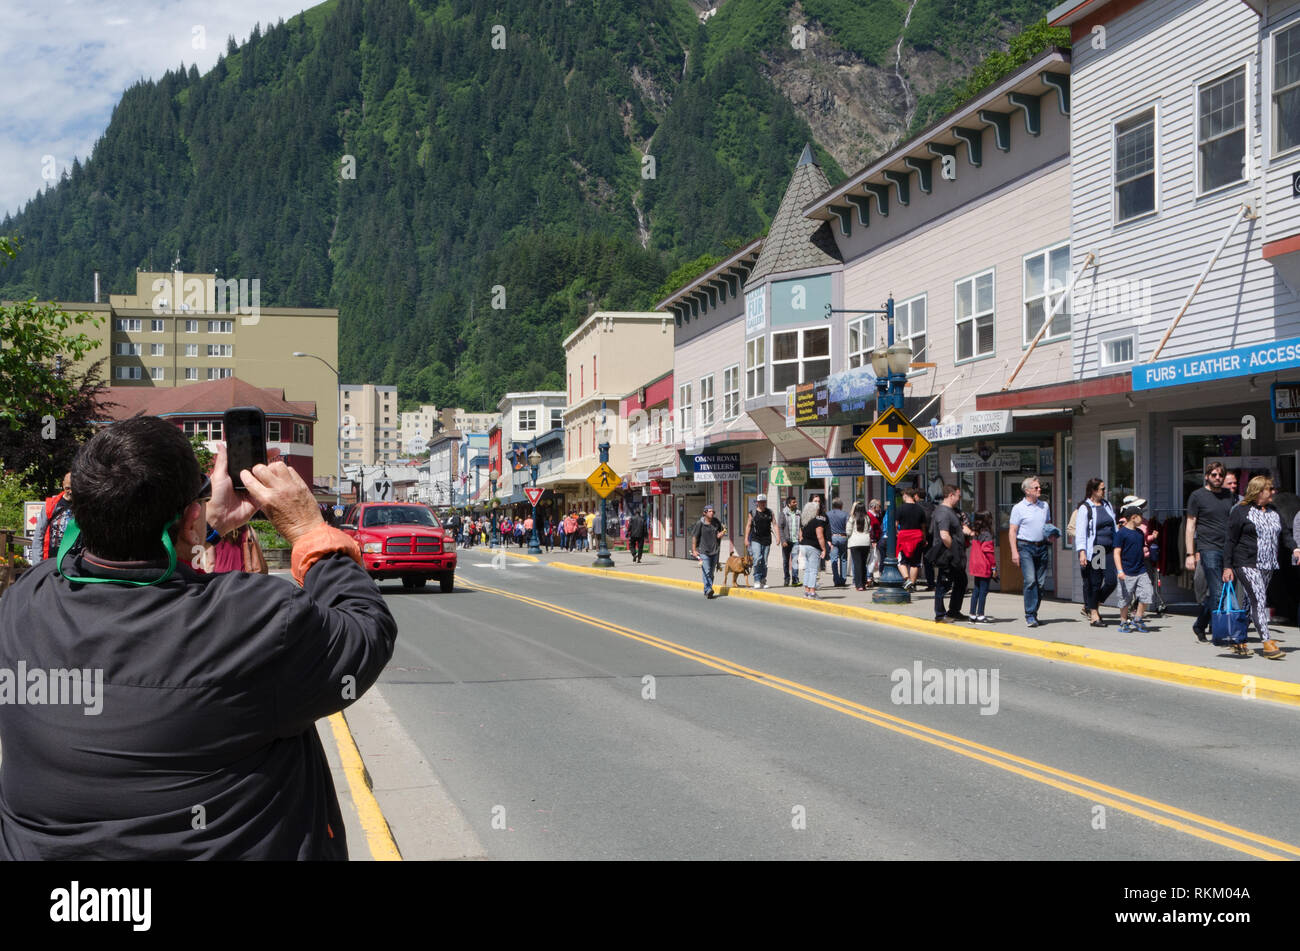 Person uses smartphone to photograph the downtown tourist area of Juneau, Alaska. - Stock Image